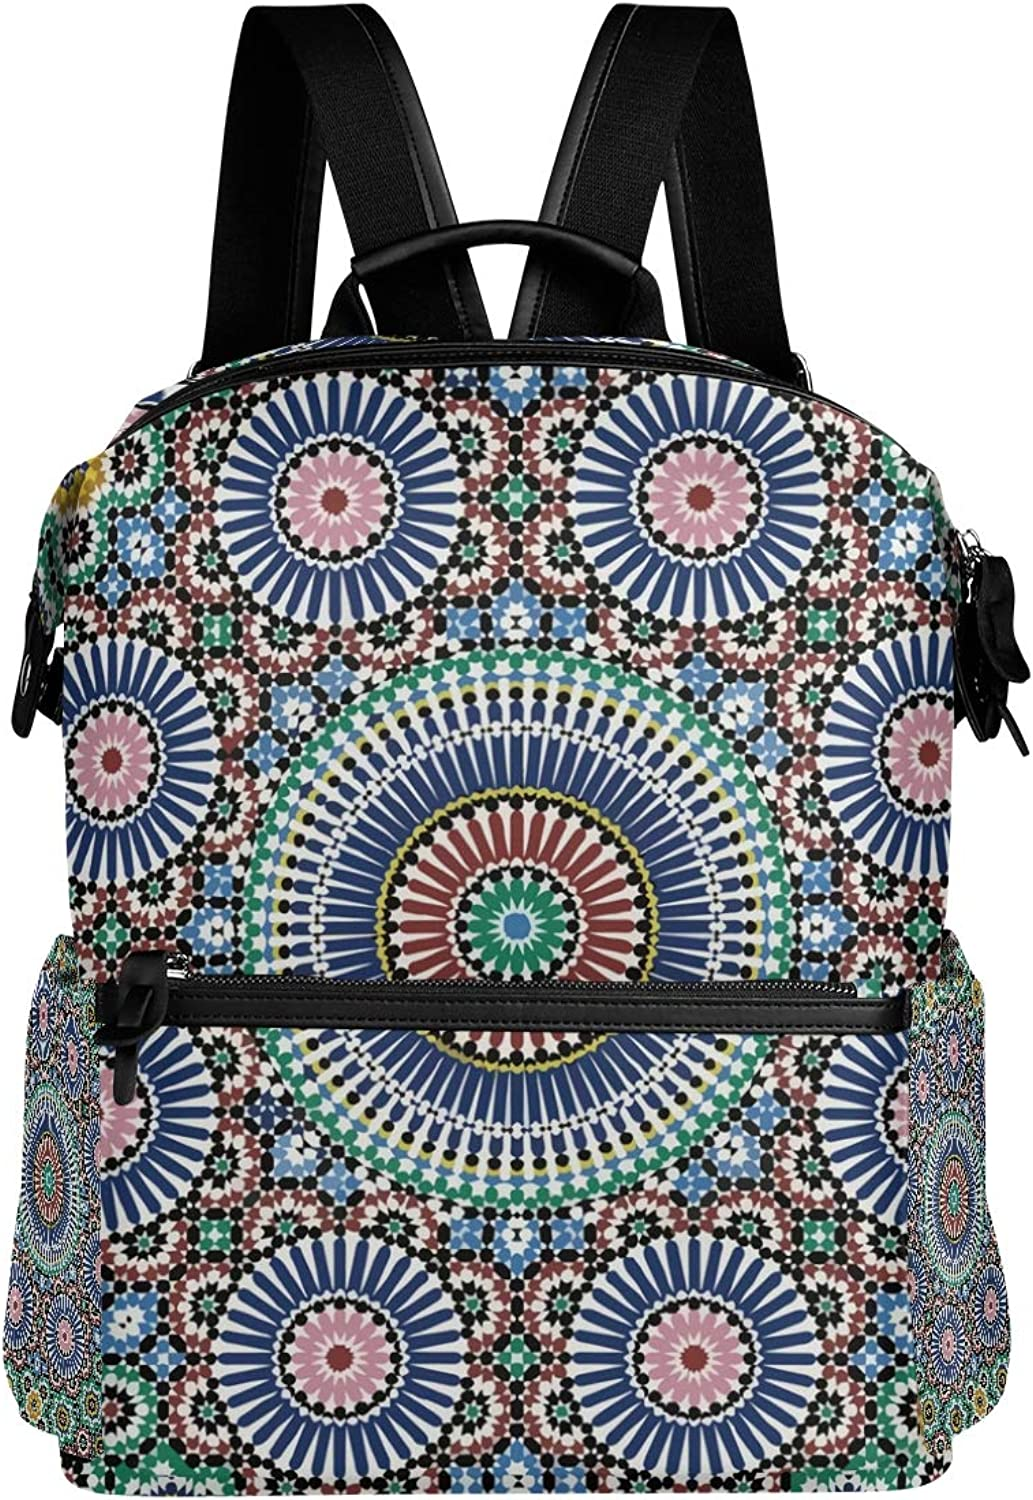 MONTOJ colorful Traditional Arabic Circle Leather Travel Bag Campus Backpack